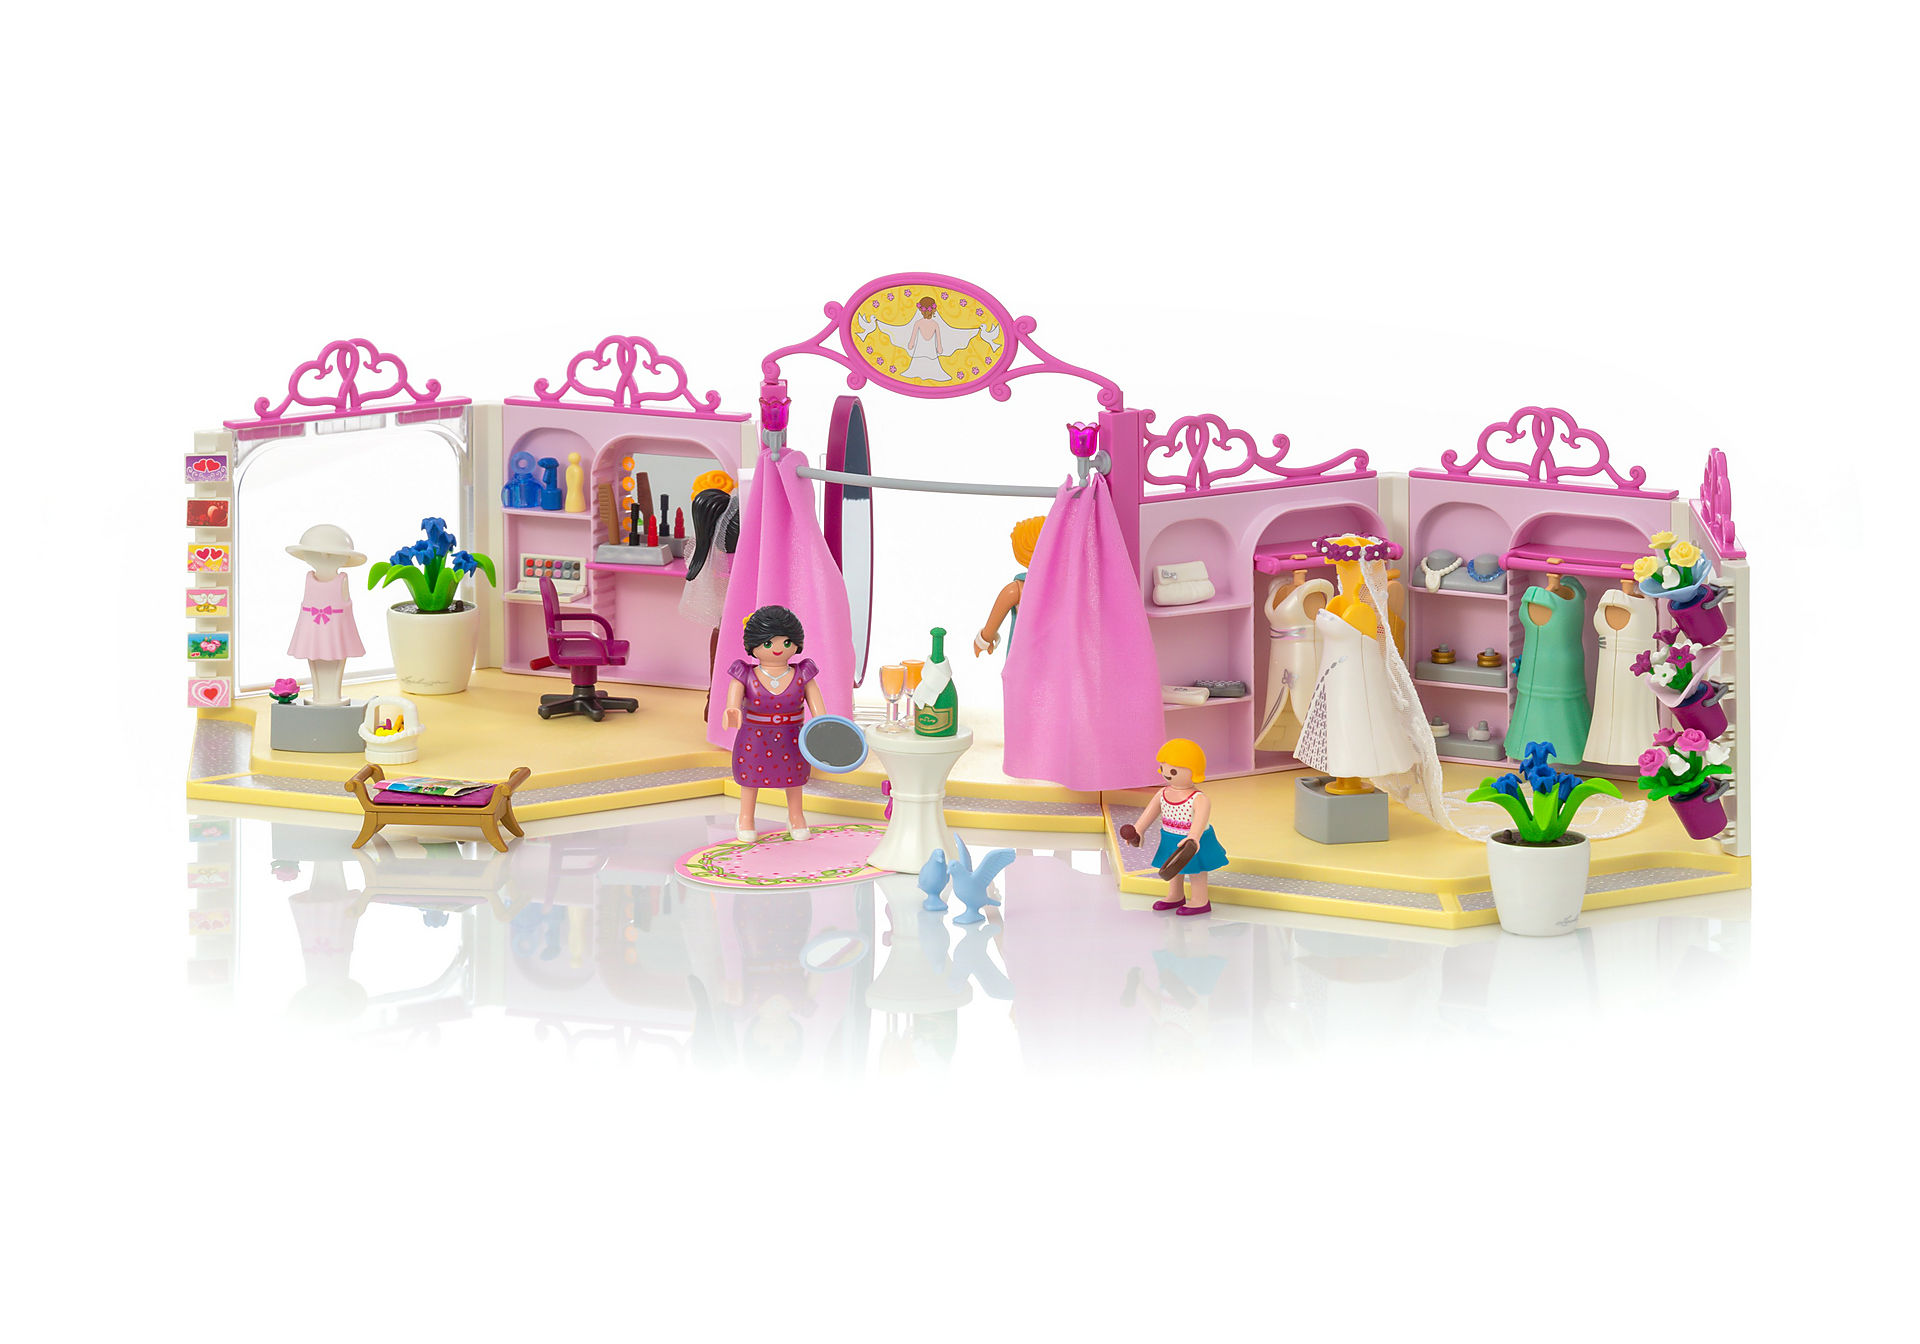 Cabine D Essayage Dimension boutique robes de mariée - 9226 - playmobil® france